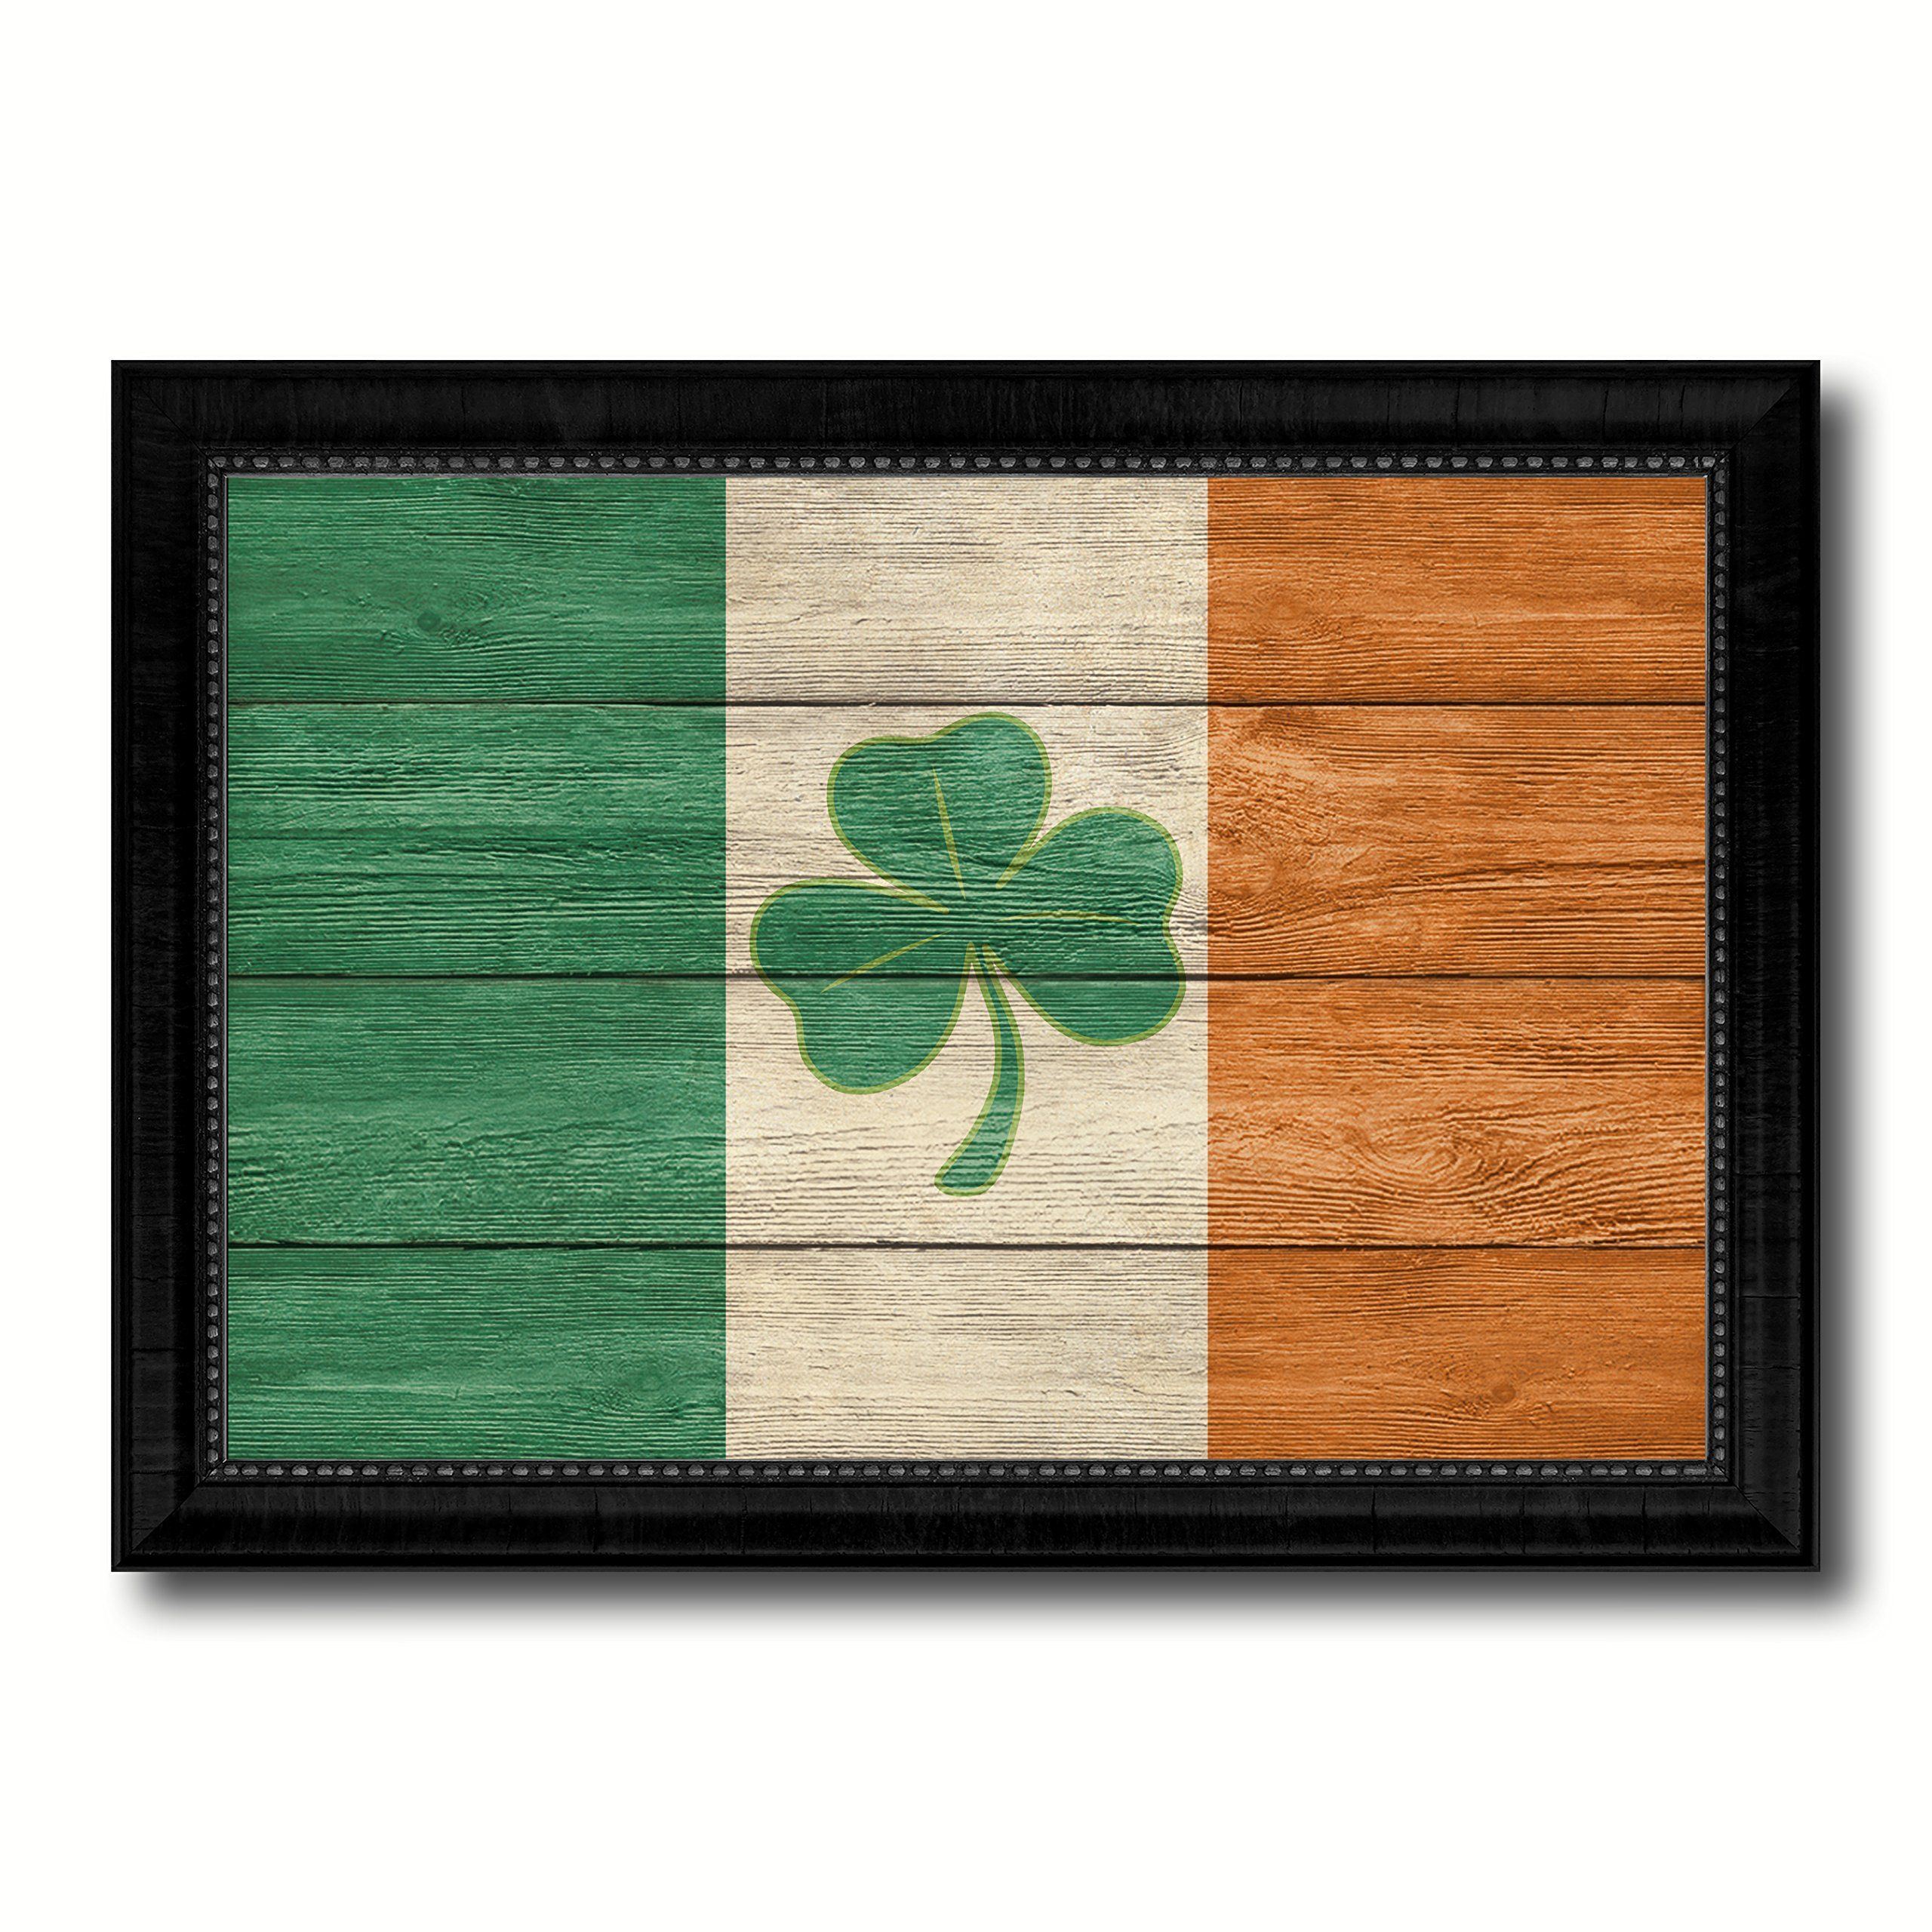 Ireland Saint Petrick Military Texture Flag Canvas Print Picture Frames Patriotic Office Home Decor Wall Art Decoration Gifts 23''x33''